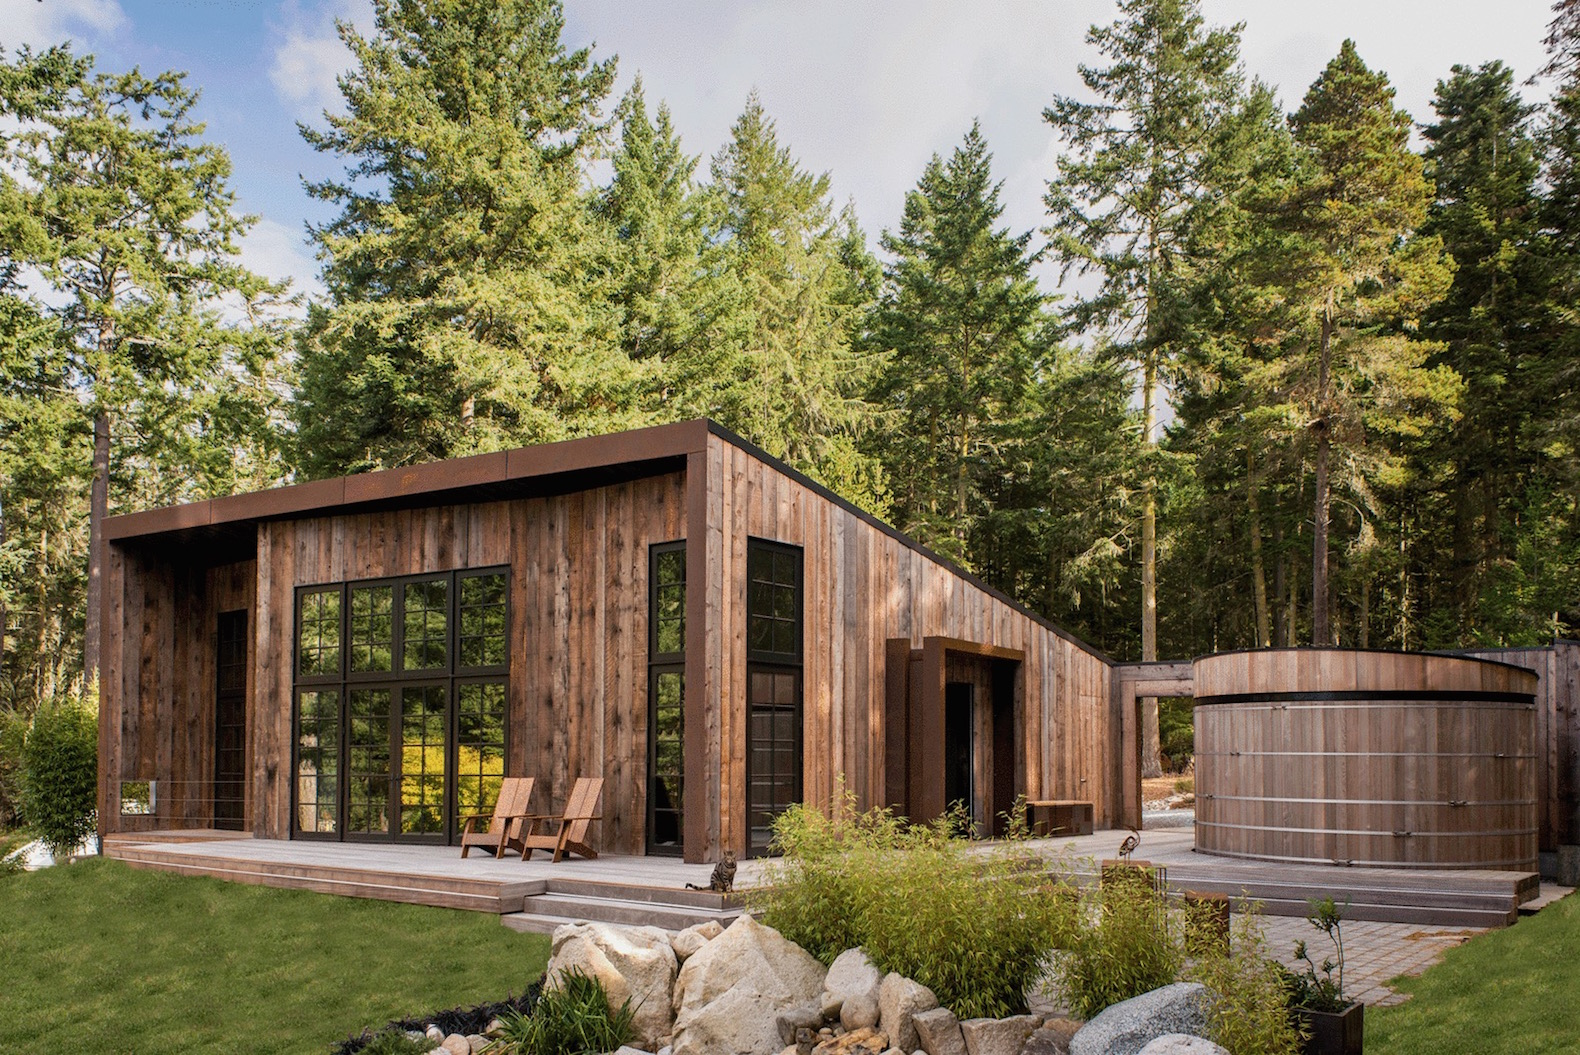 Dreamy cabin harvests rainwater and natural light for a minimal carbon footprint